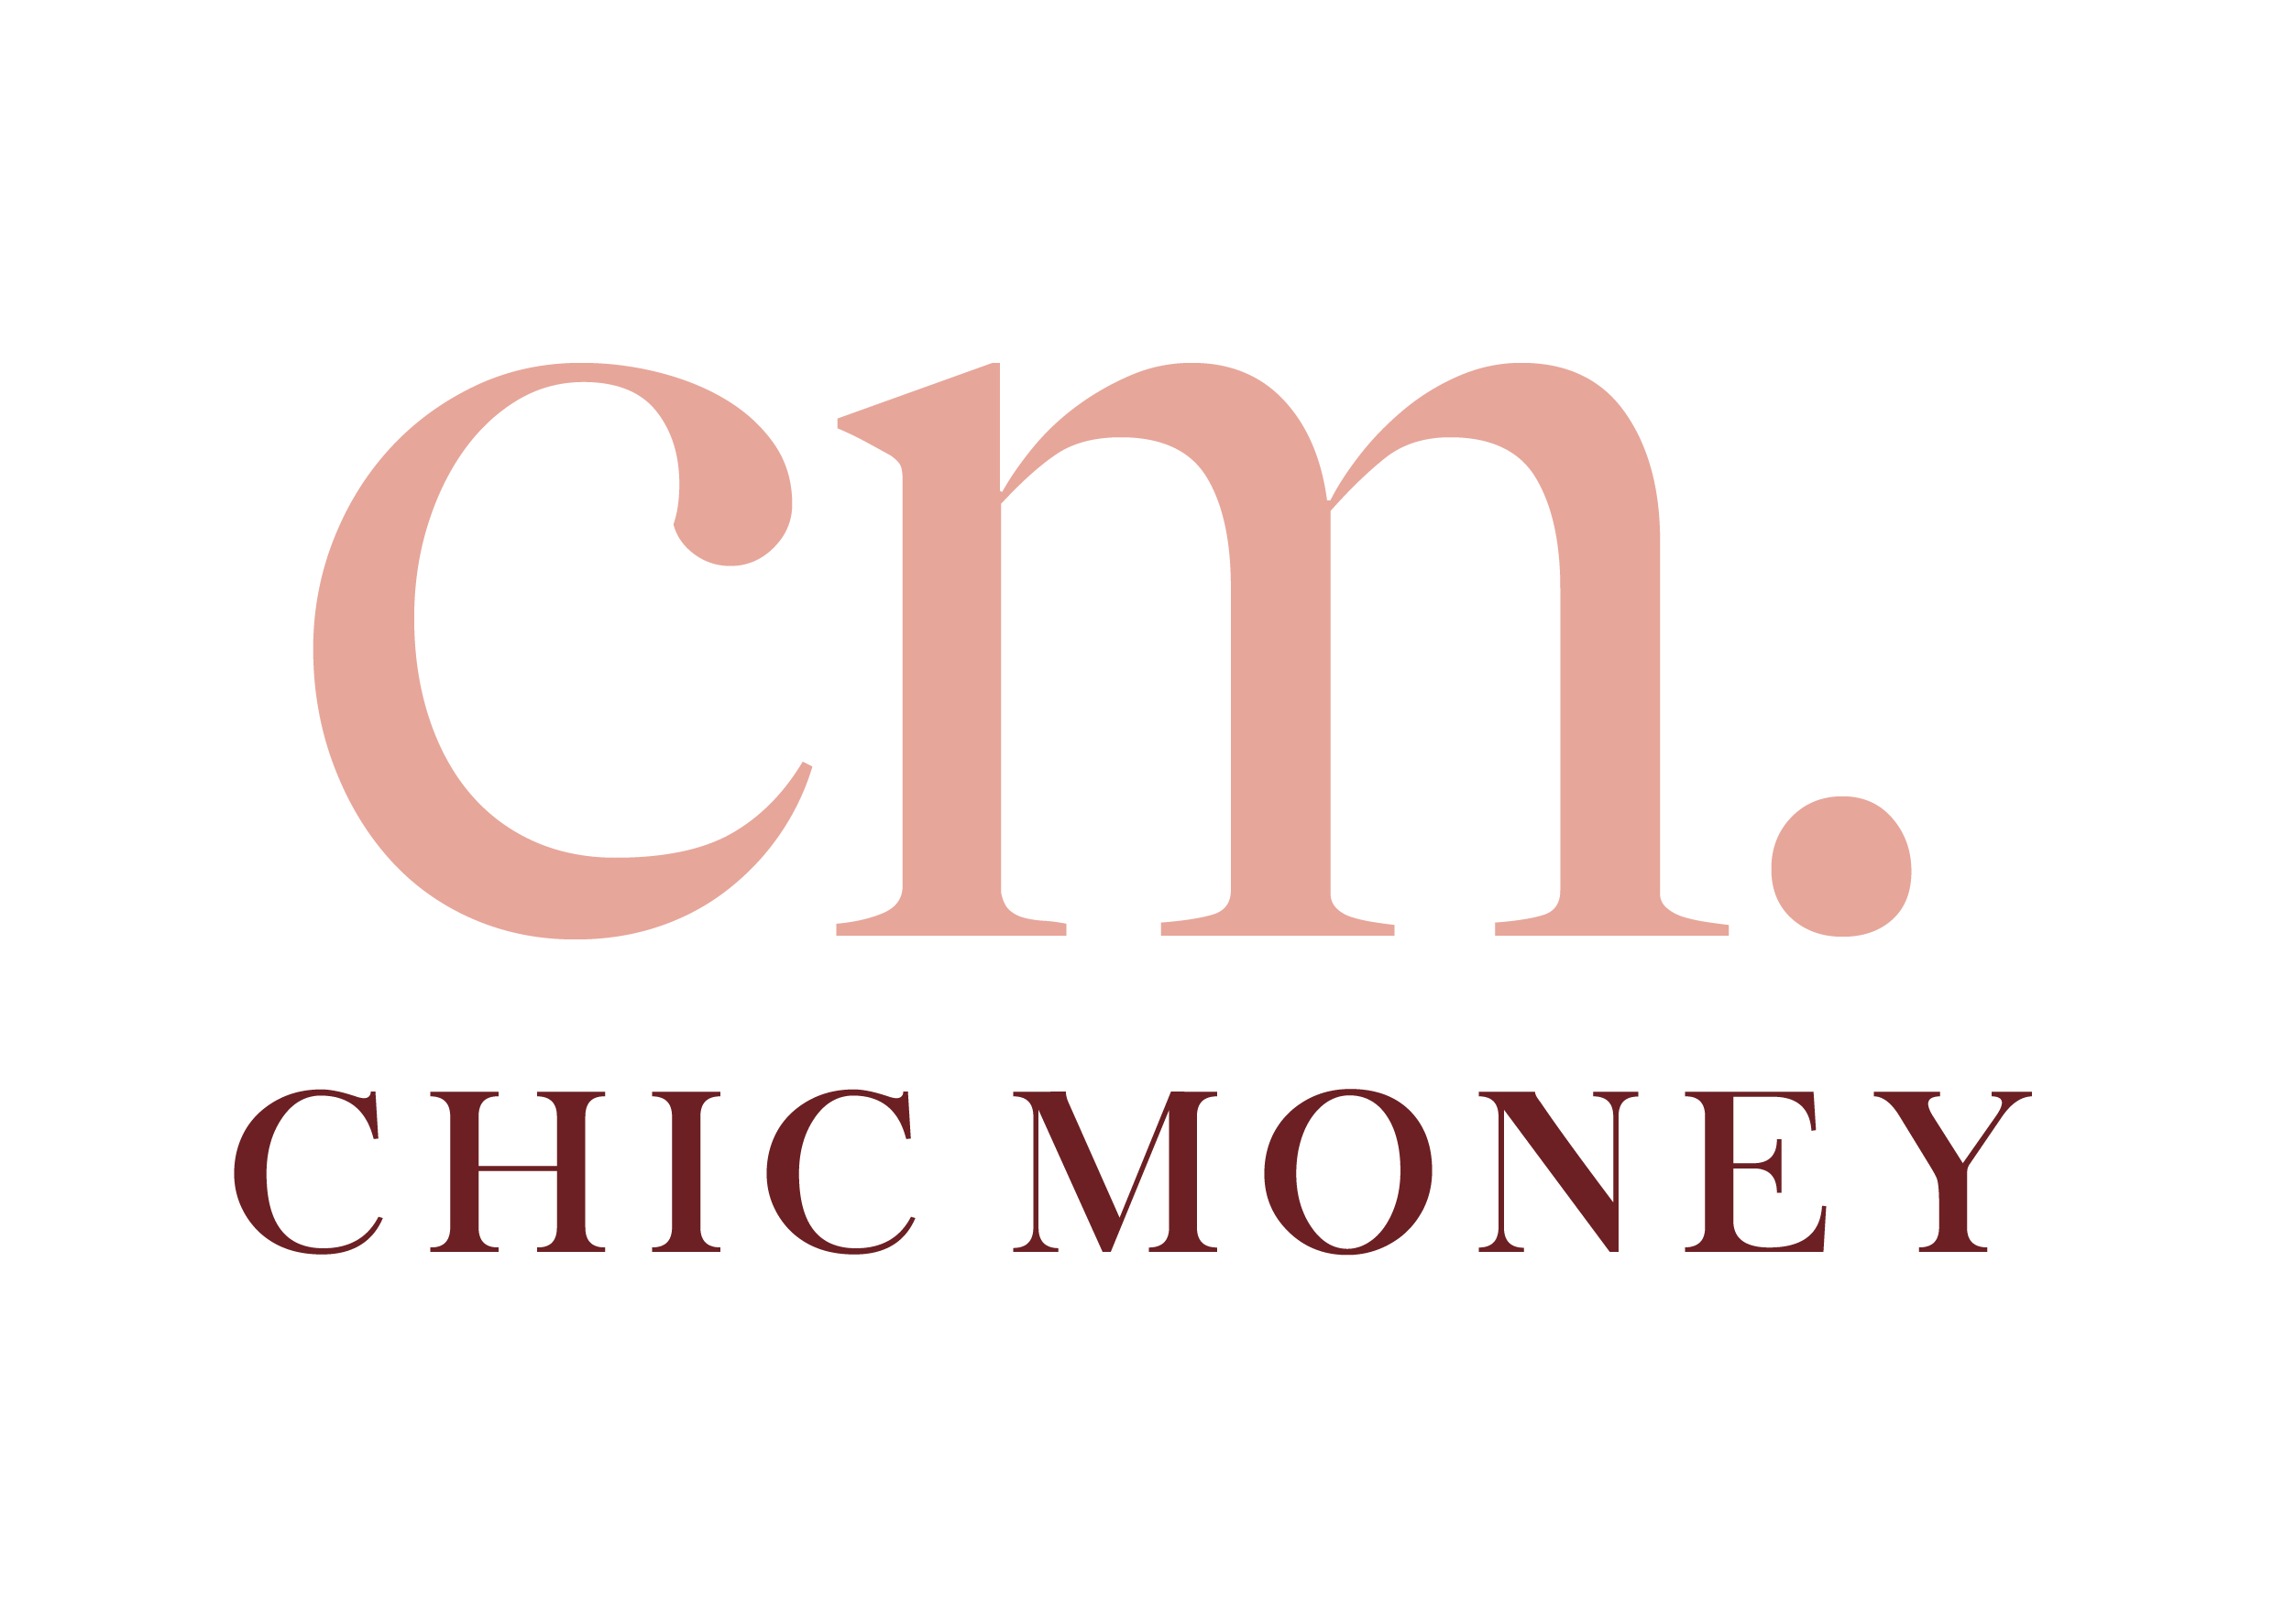 Chic Money